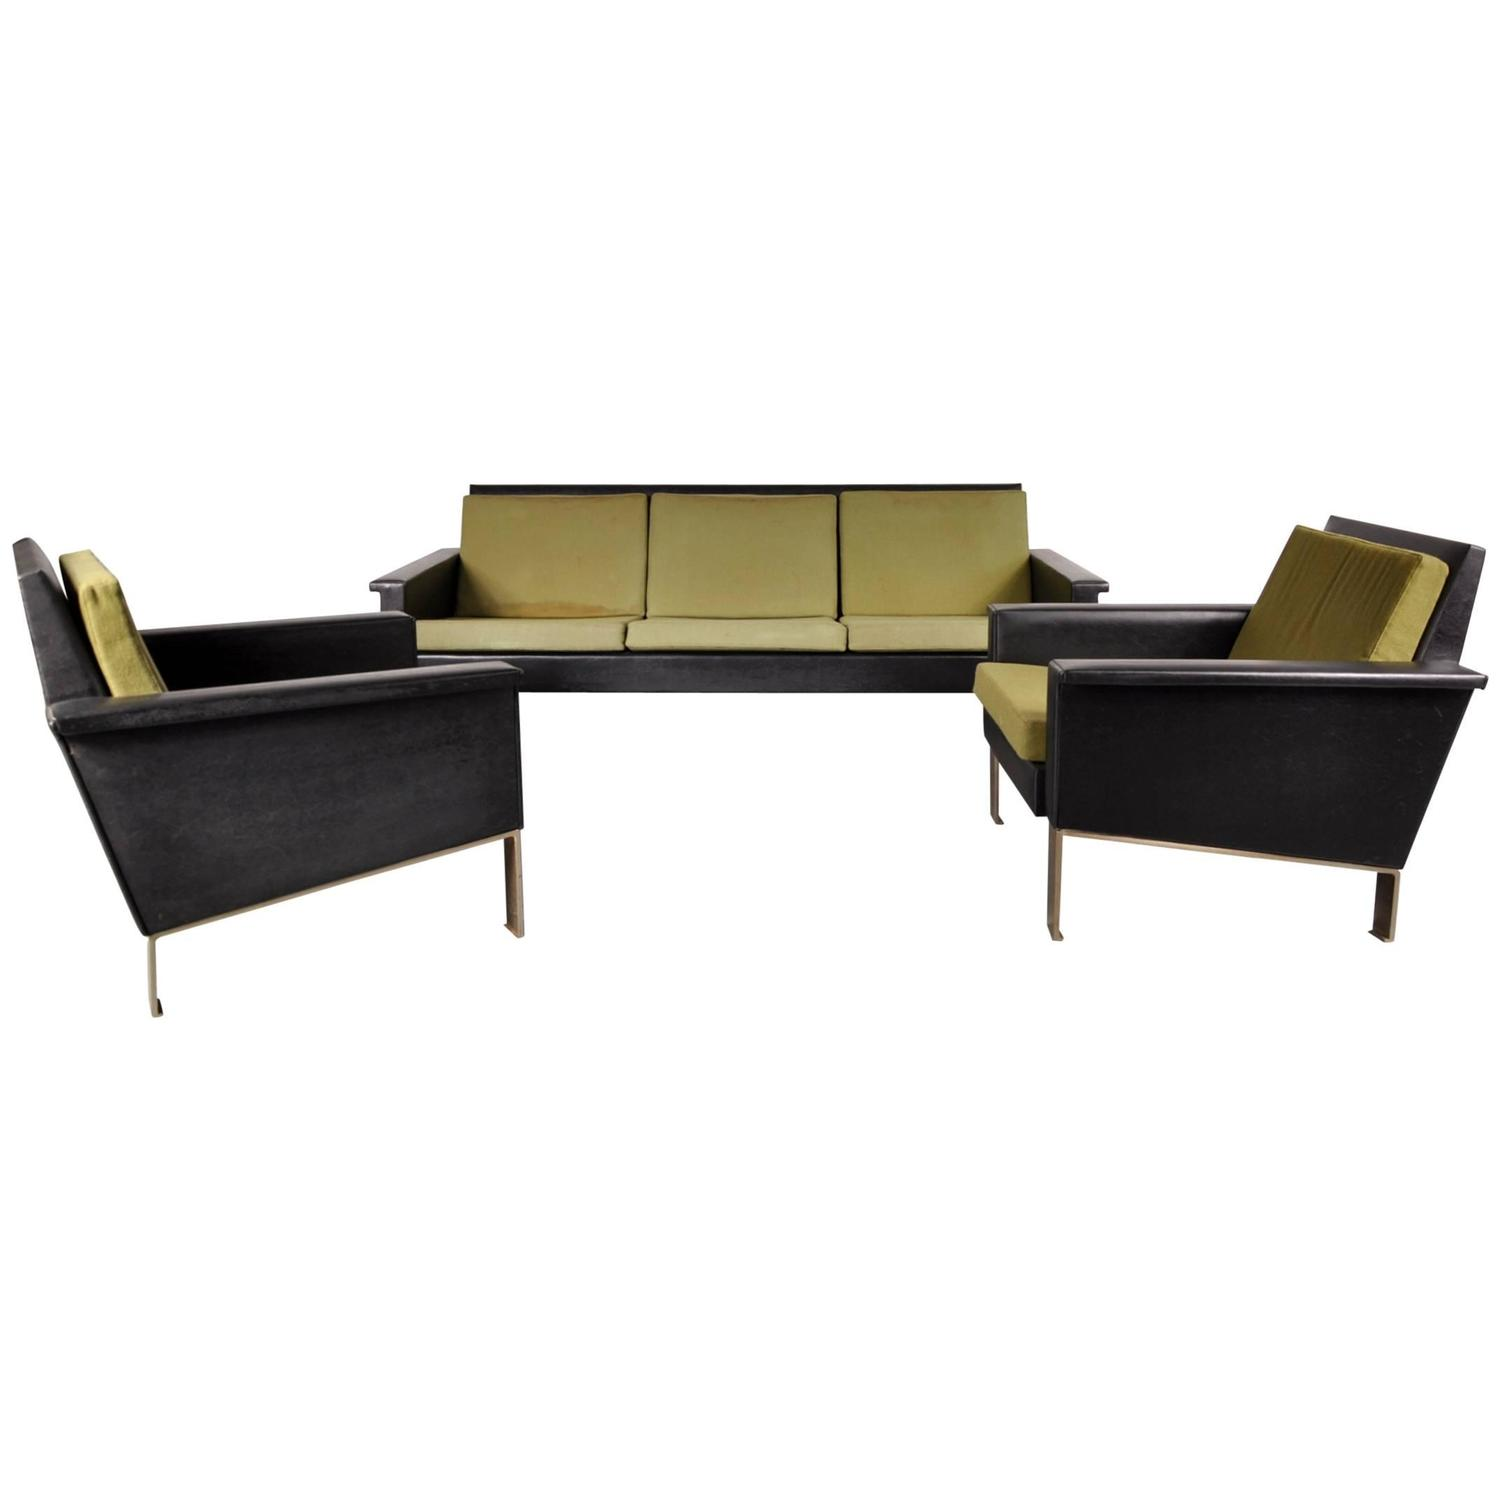 Living Room Set By Jac Haan For Metz And Co Netherlands